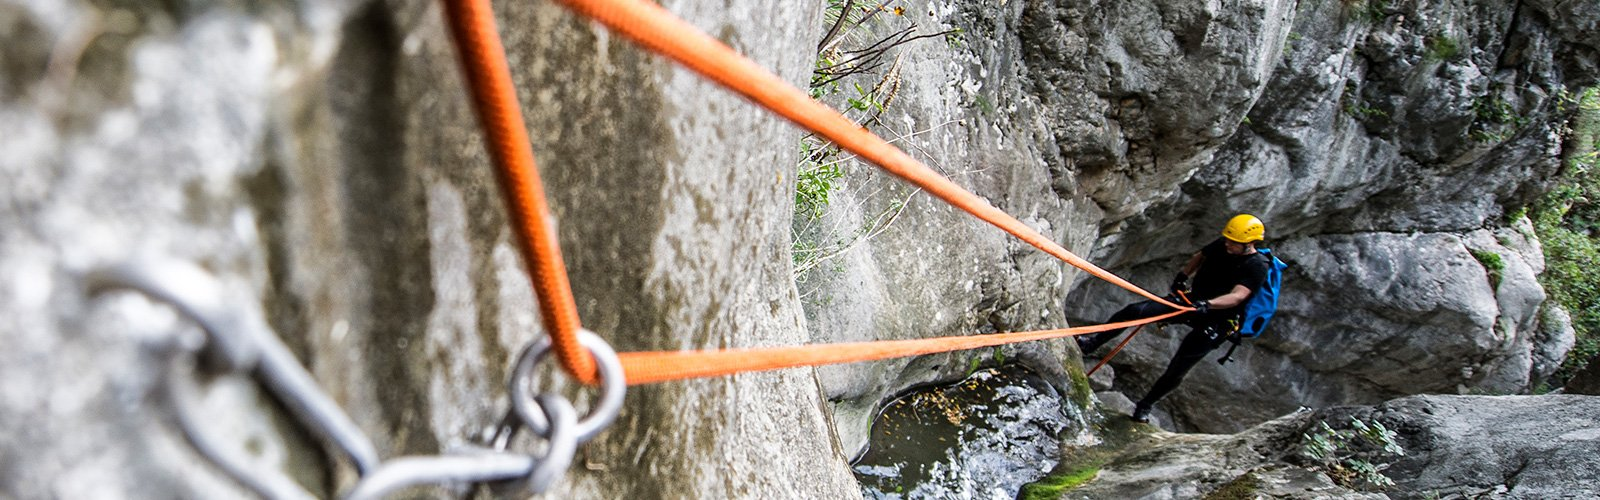 Climber connected to the rocks